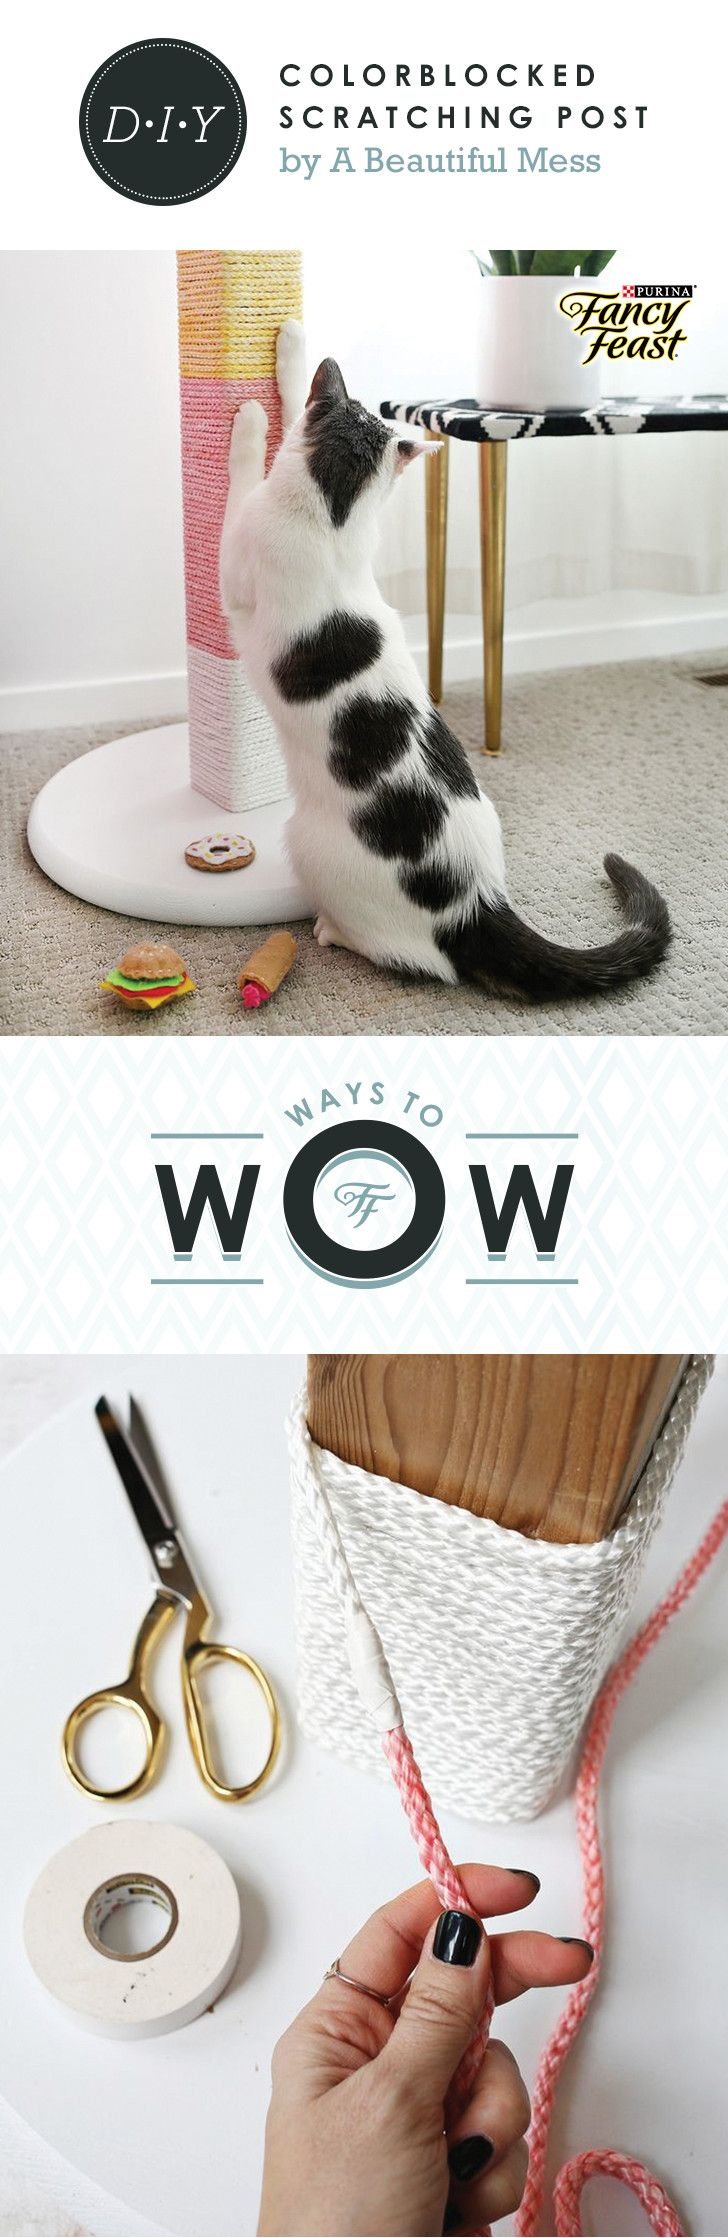 """Colorblocked Scratching Post: Stylish and simple, this DIY will wow your favorite feline. Click to see how Laura Gummerman of A Beautiful Mess created this DIY for her cat. #WaysToWow  Supplies: - Round wood circle (18"""") - 4x4 wooden fence post (about 20"""" tall) - Drill and long wood screws - White 4x4"""" post cap  - Paint (white) - 150ft of 1/4 nylon rope - Dye (pink & yellow) - Bucket and salt (to dye rope) - Staple gun (or hammer & small nails) - Electrical tape (white & pink or white…"""